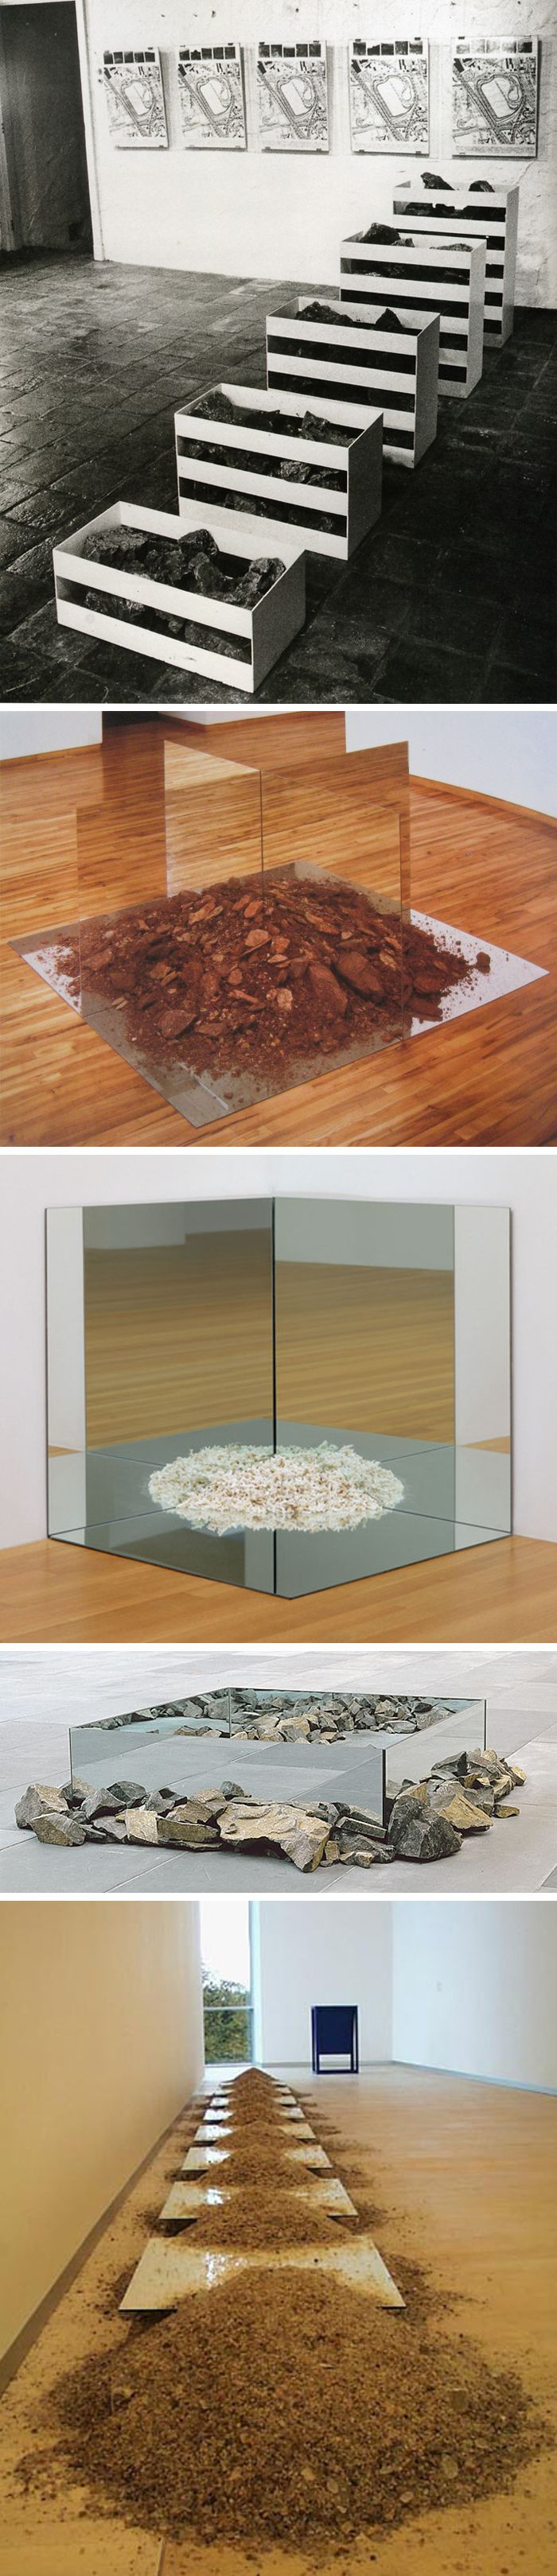 Robert Smithson || Nonsite sculptures